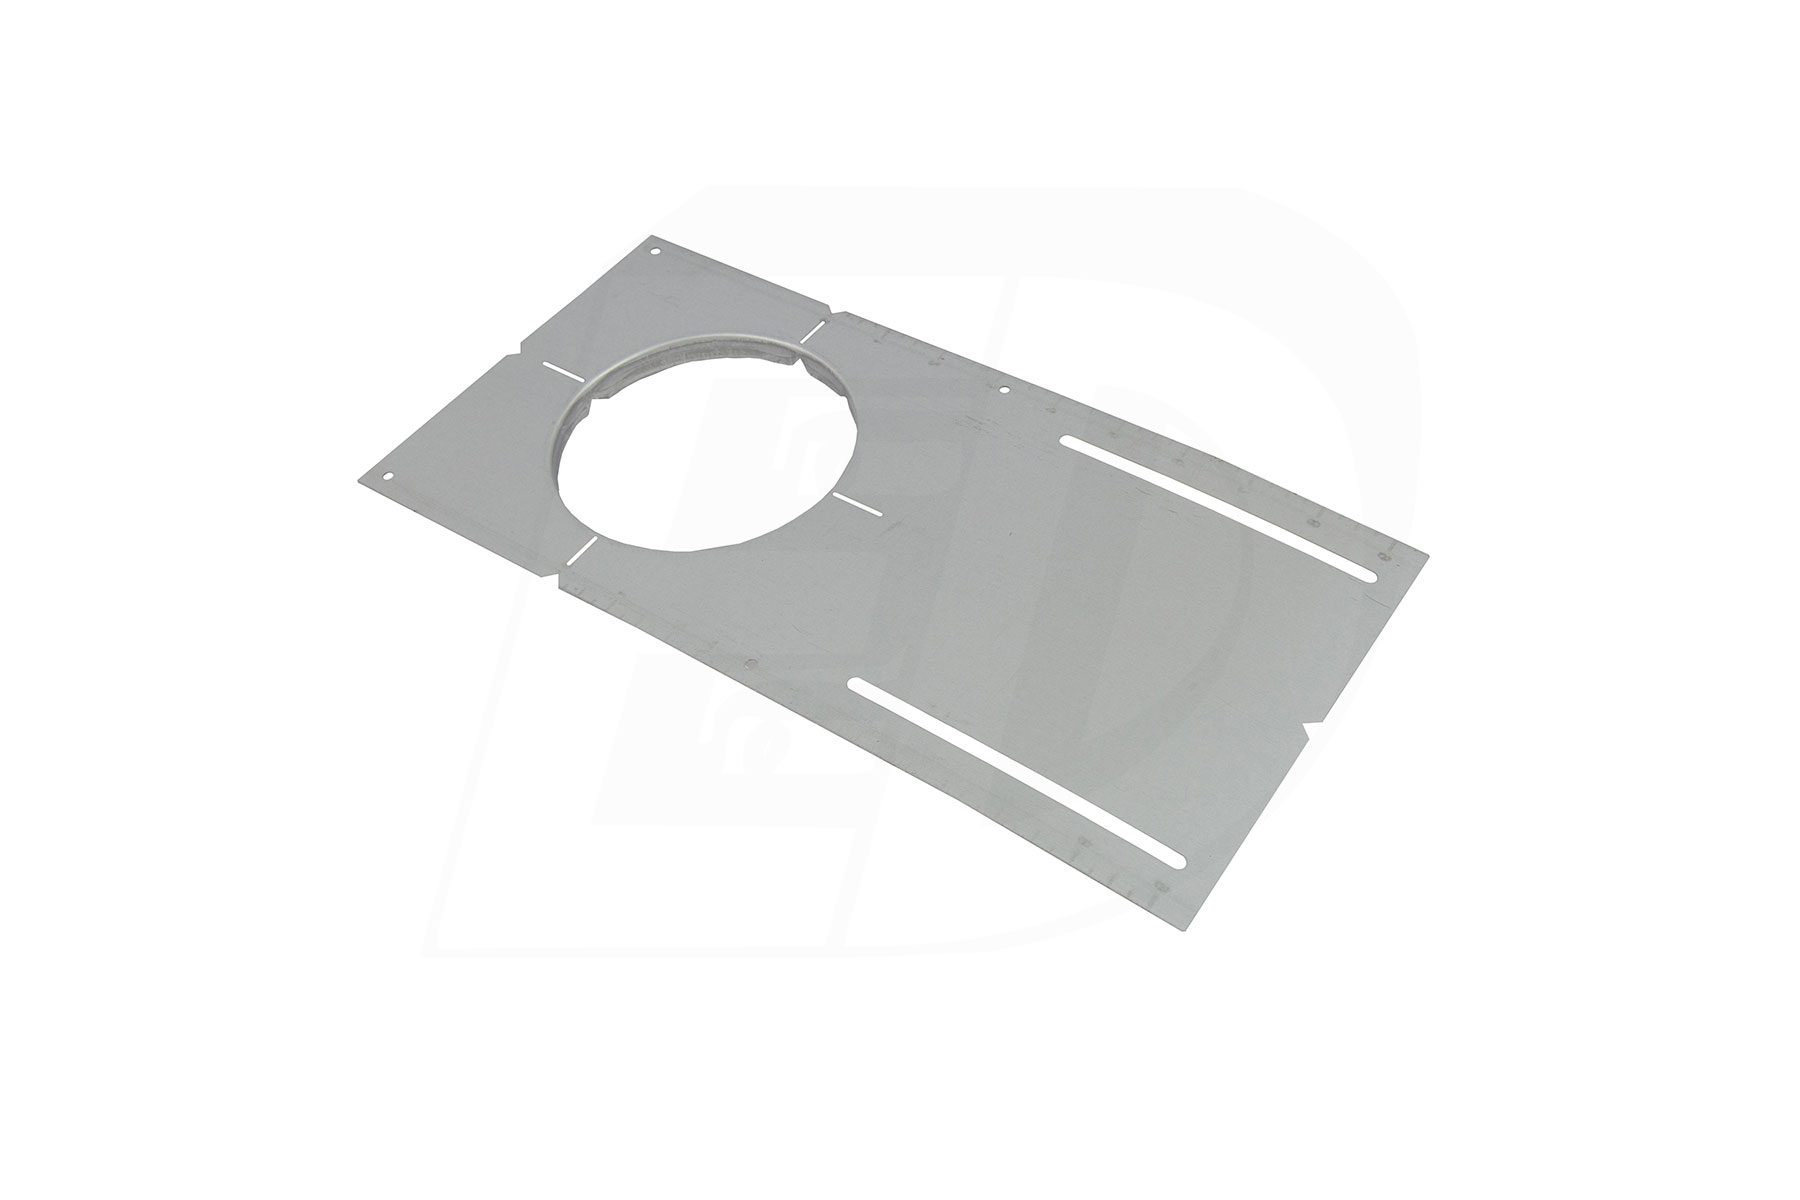 Round Hole Cut Pre-Mounting Plate for DLSR 4 Inch. Round Integrated LED Ultra Thin Color Selectable Canless Recessed Lighting